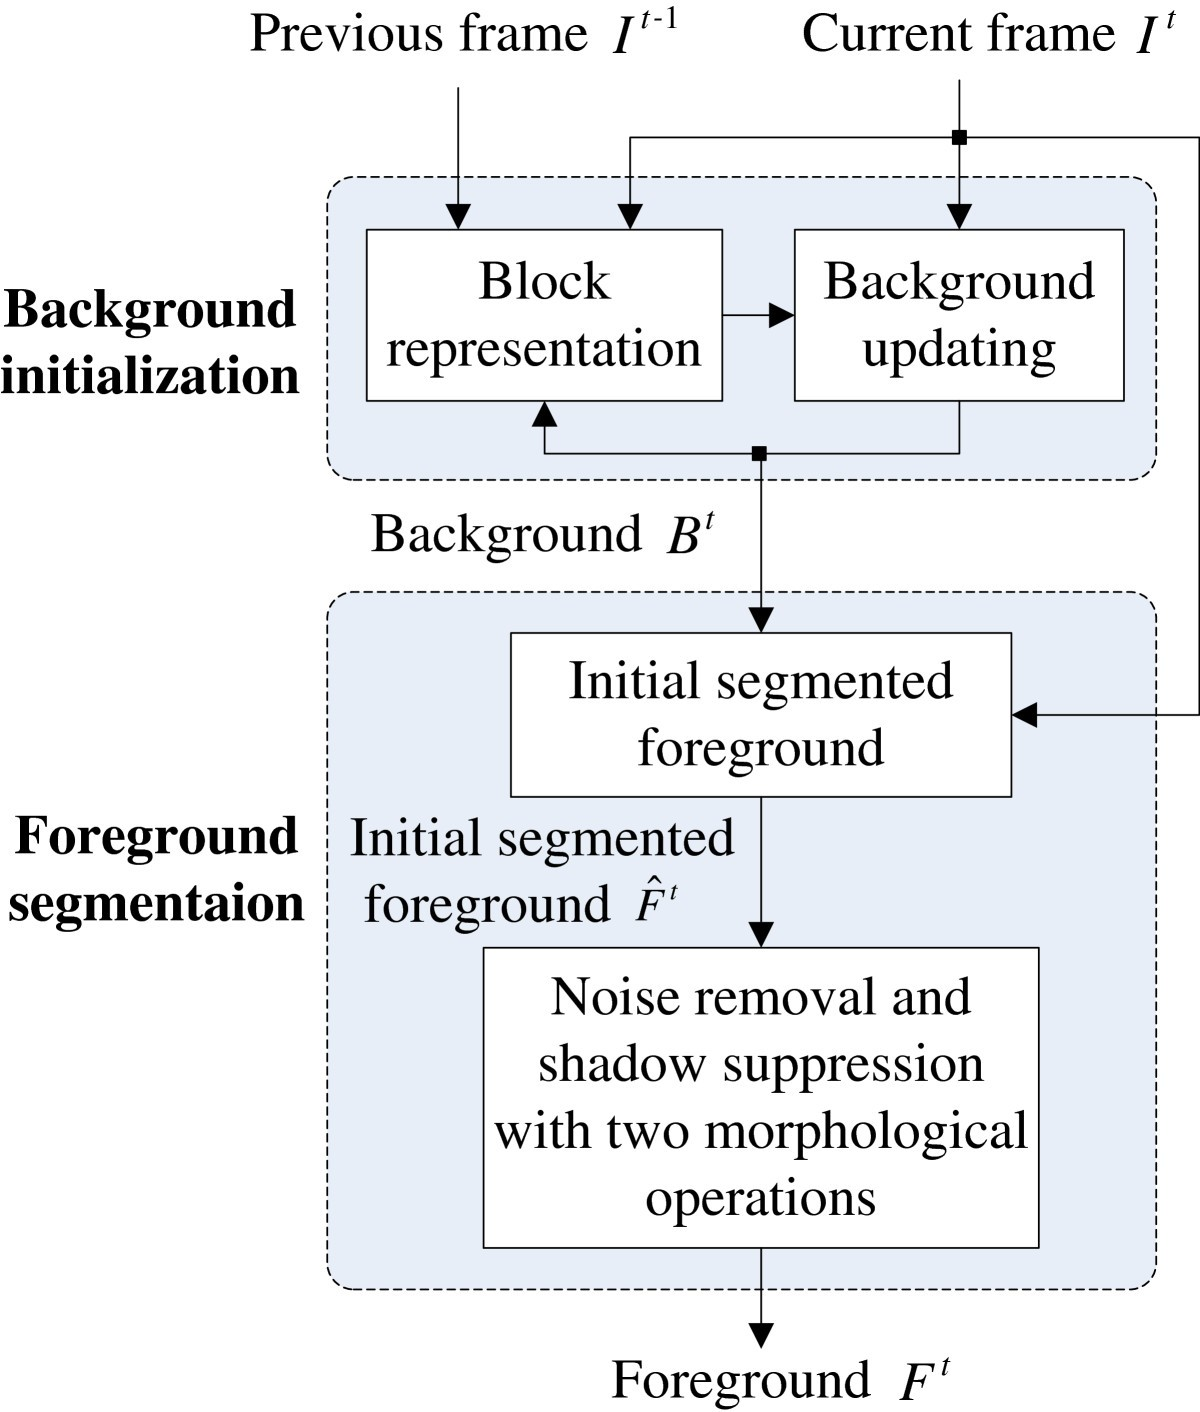 Background initialization and foreground segmentation for ...